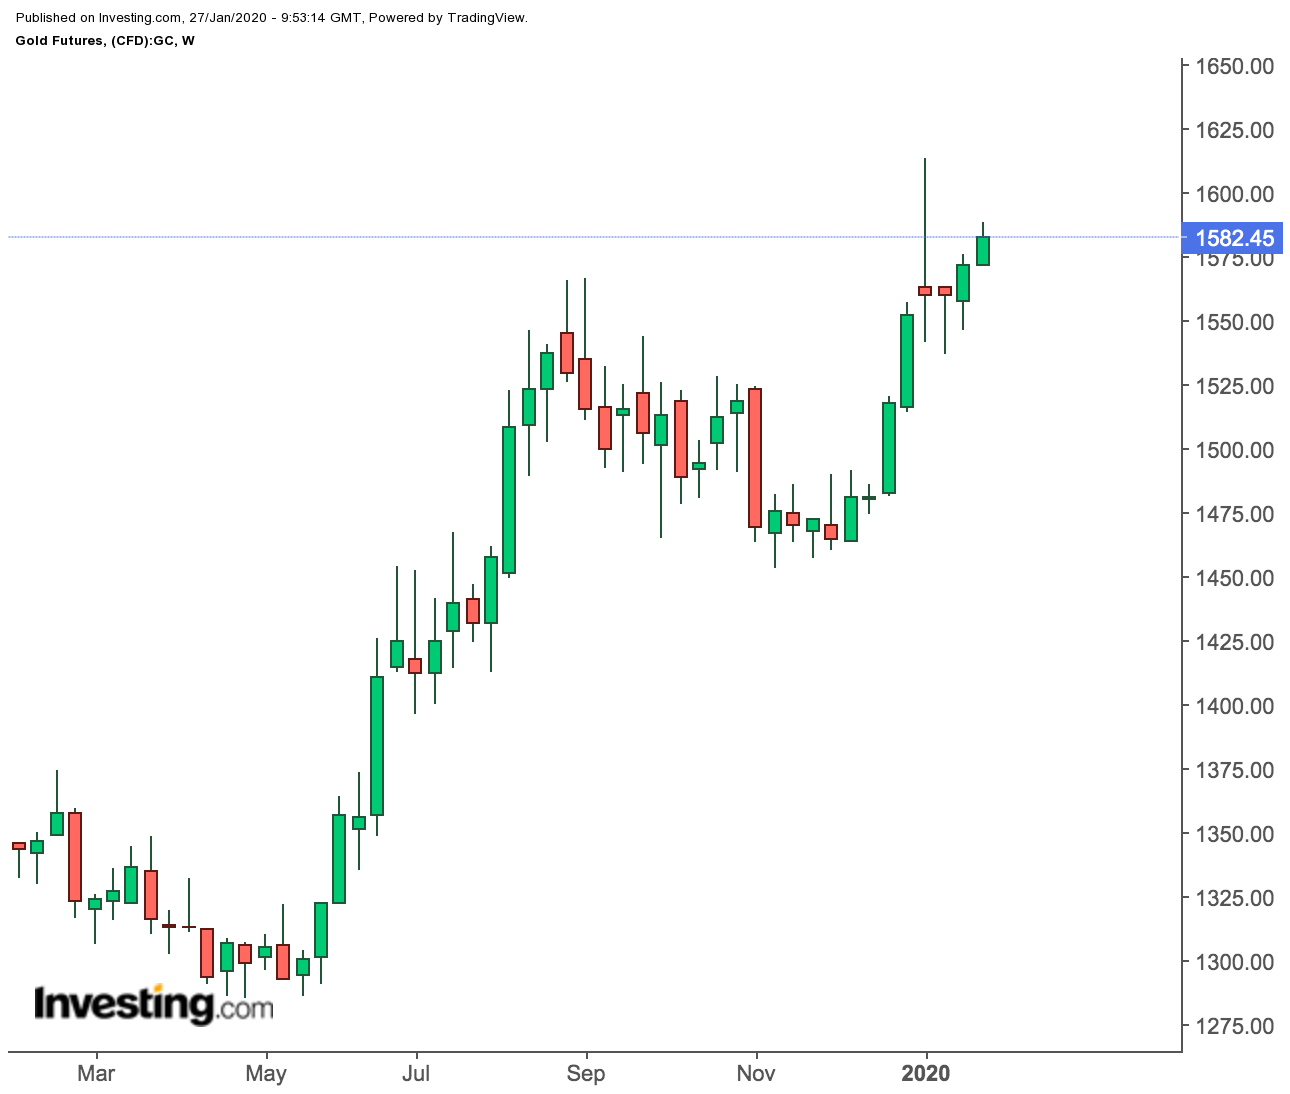 Gold Futures Weekly Chart